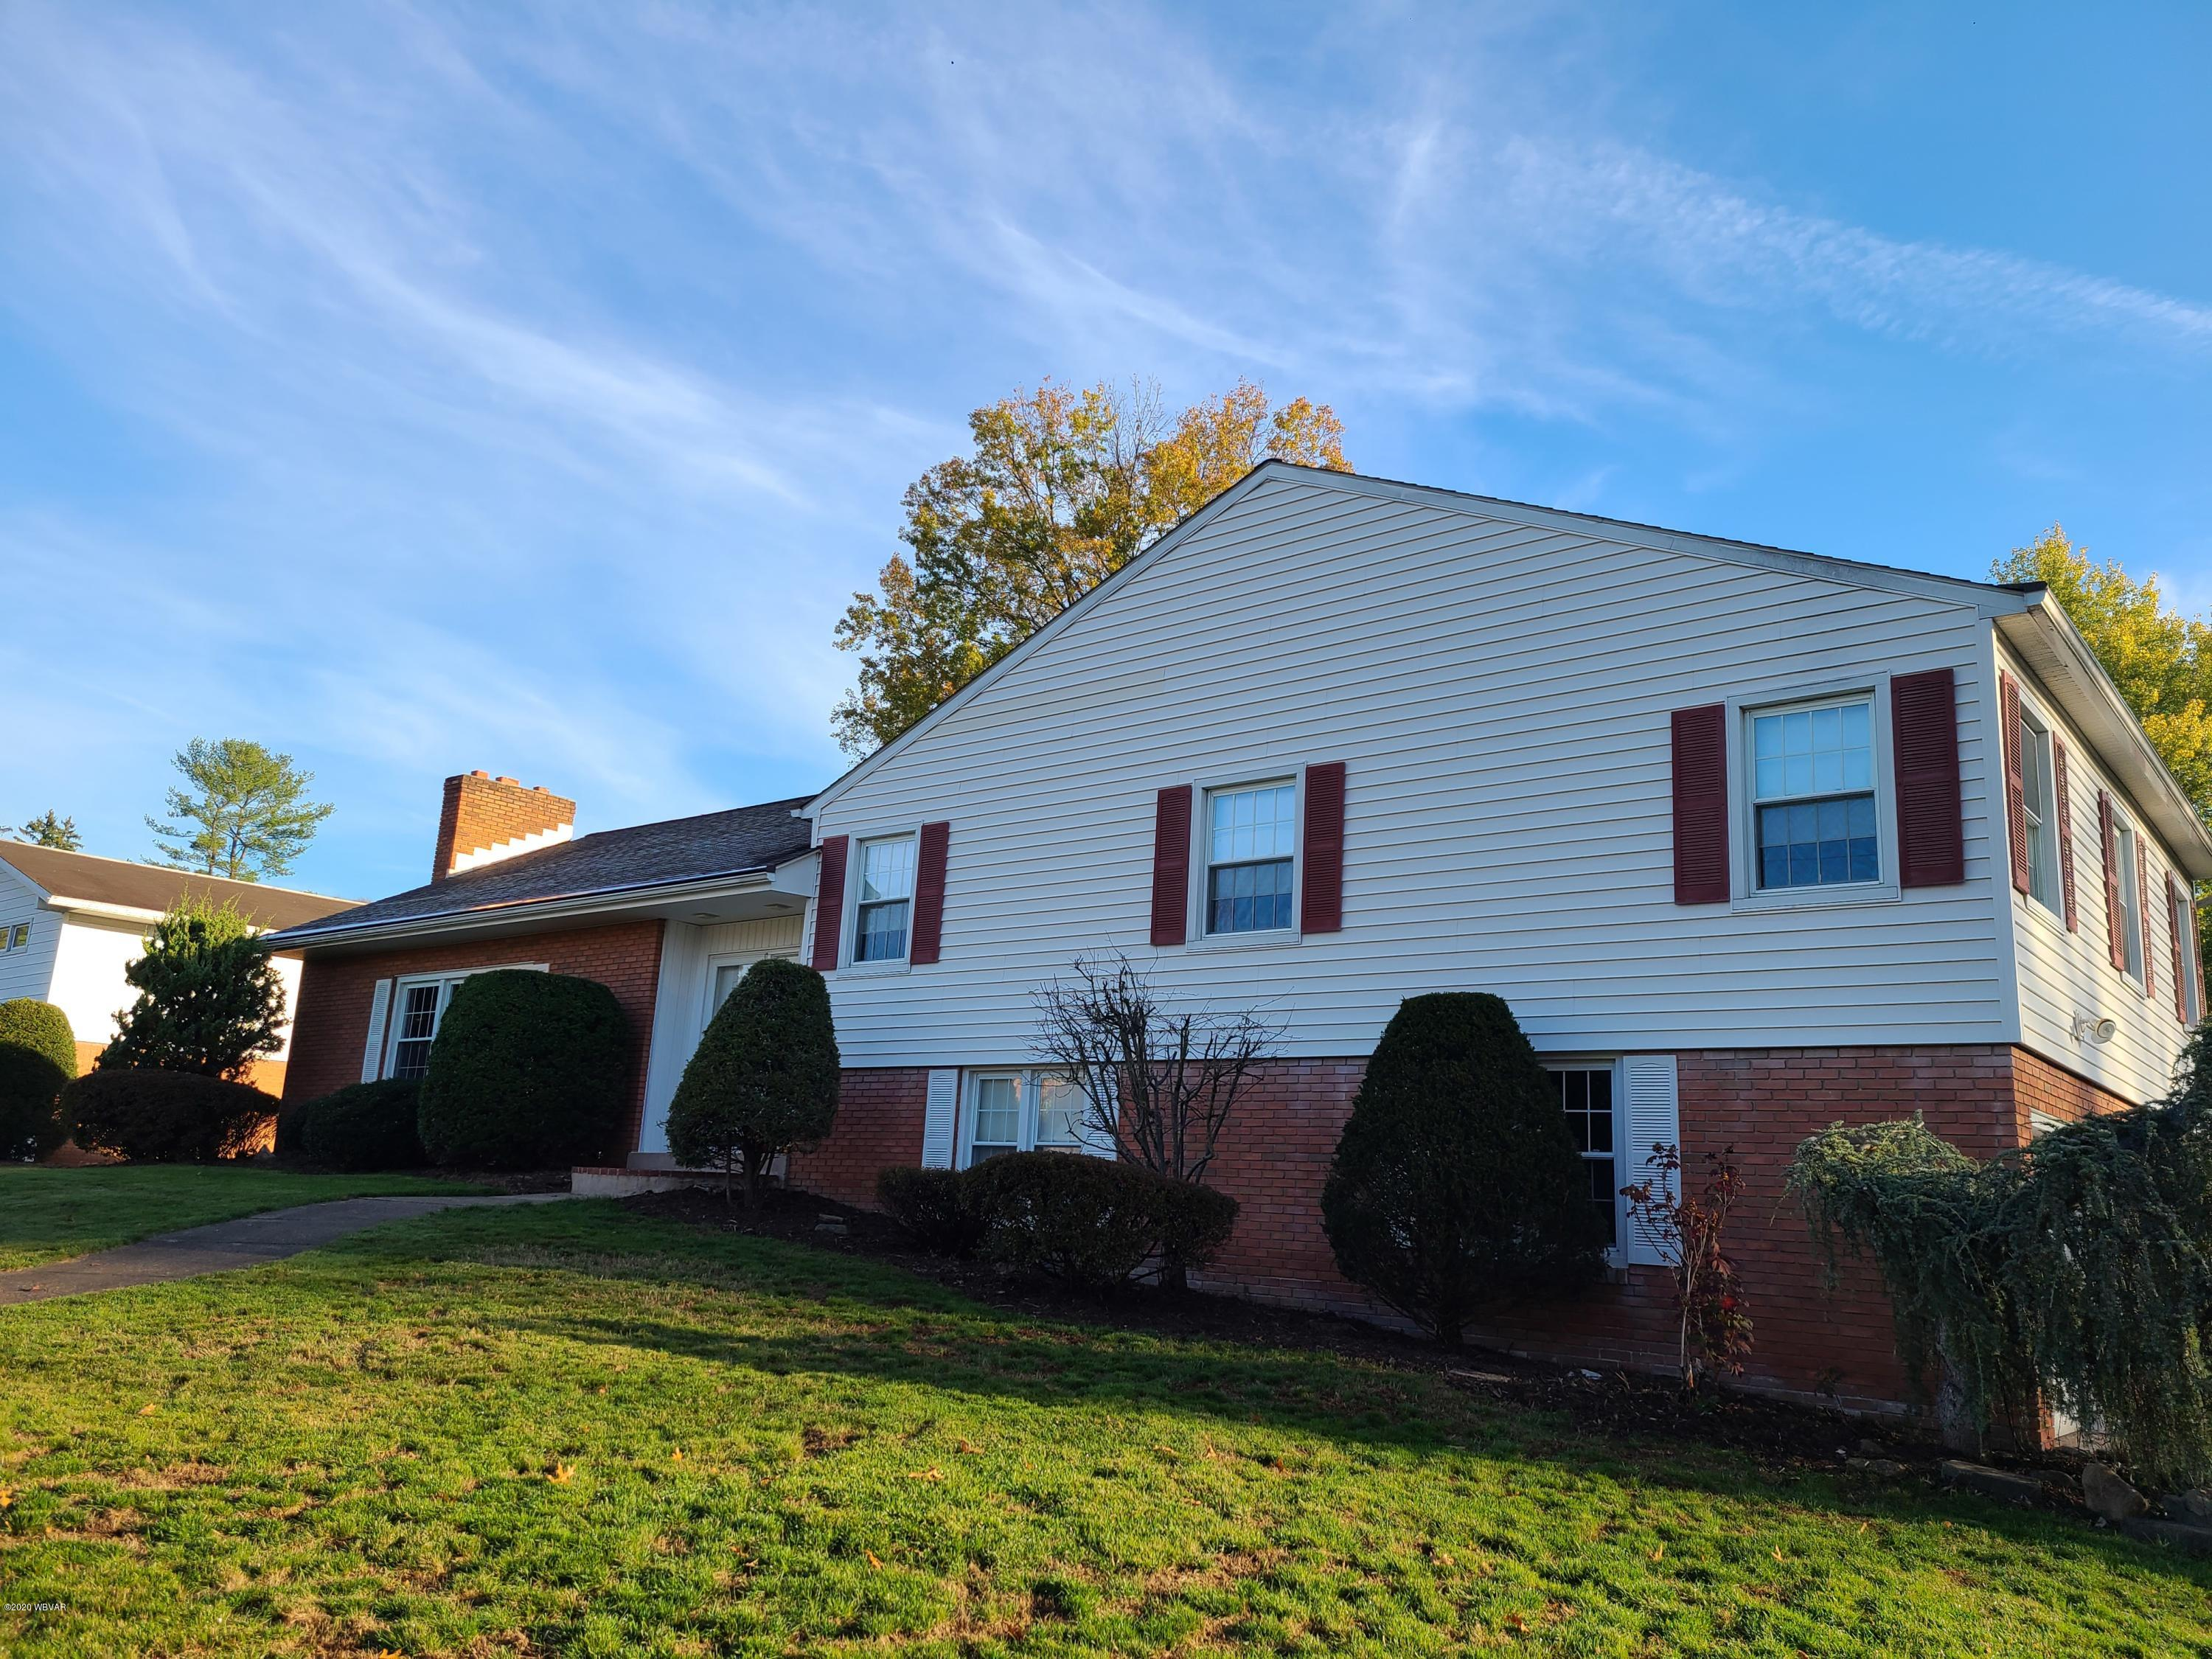 1708 FAXON PARKWAY, Williamsport, PA 17701, 4 Bedrooms Bedrooms, ,2.5 BathroomsBathrooms,Residential,For sale,FAXON,WB-91500